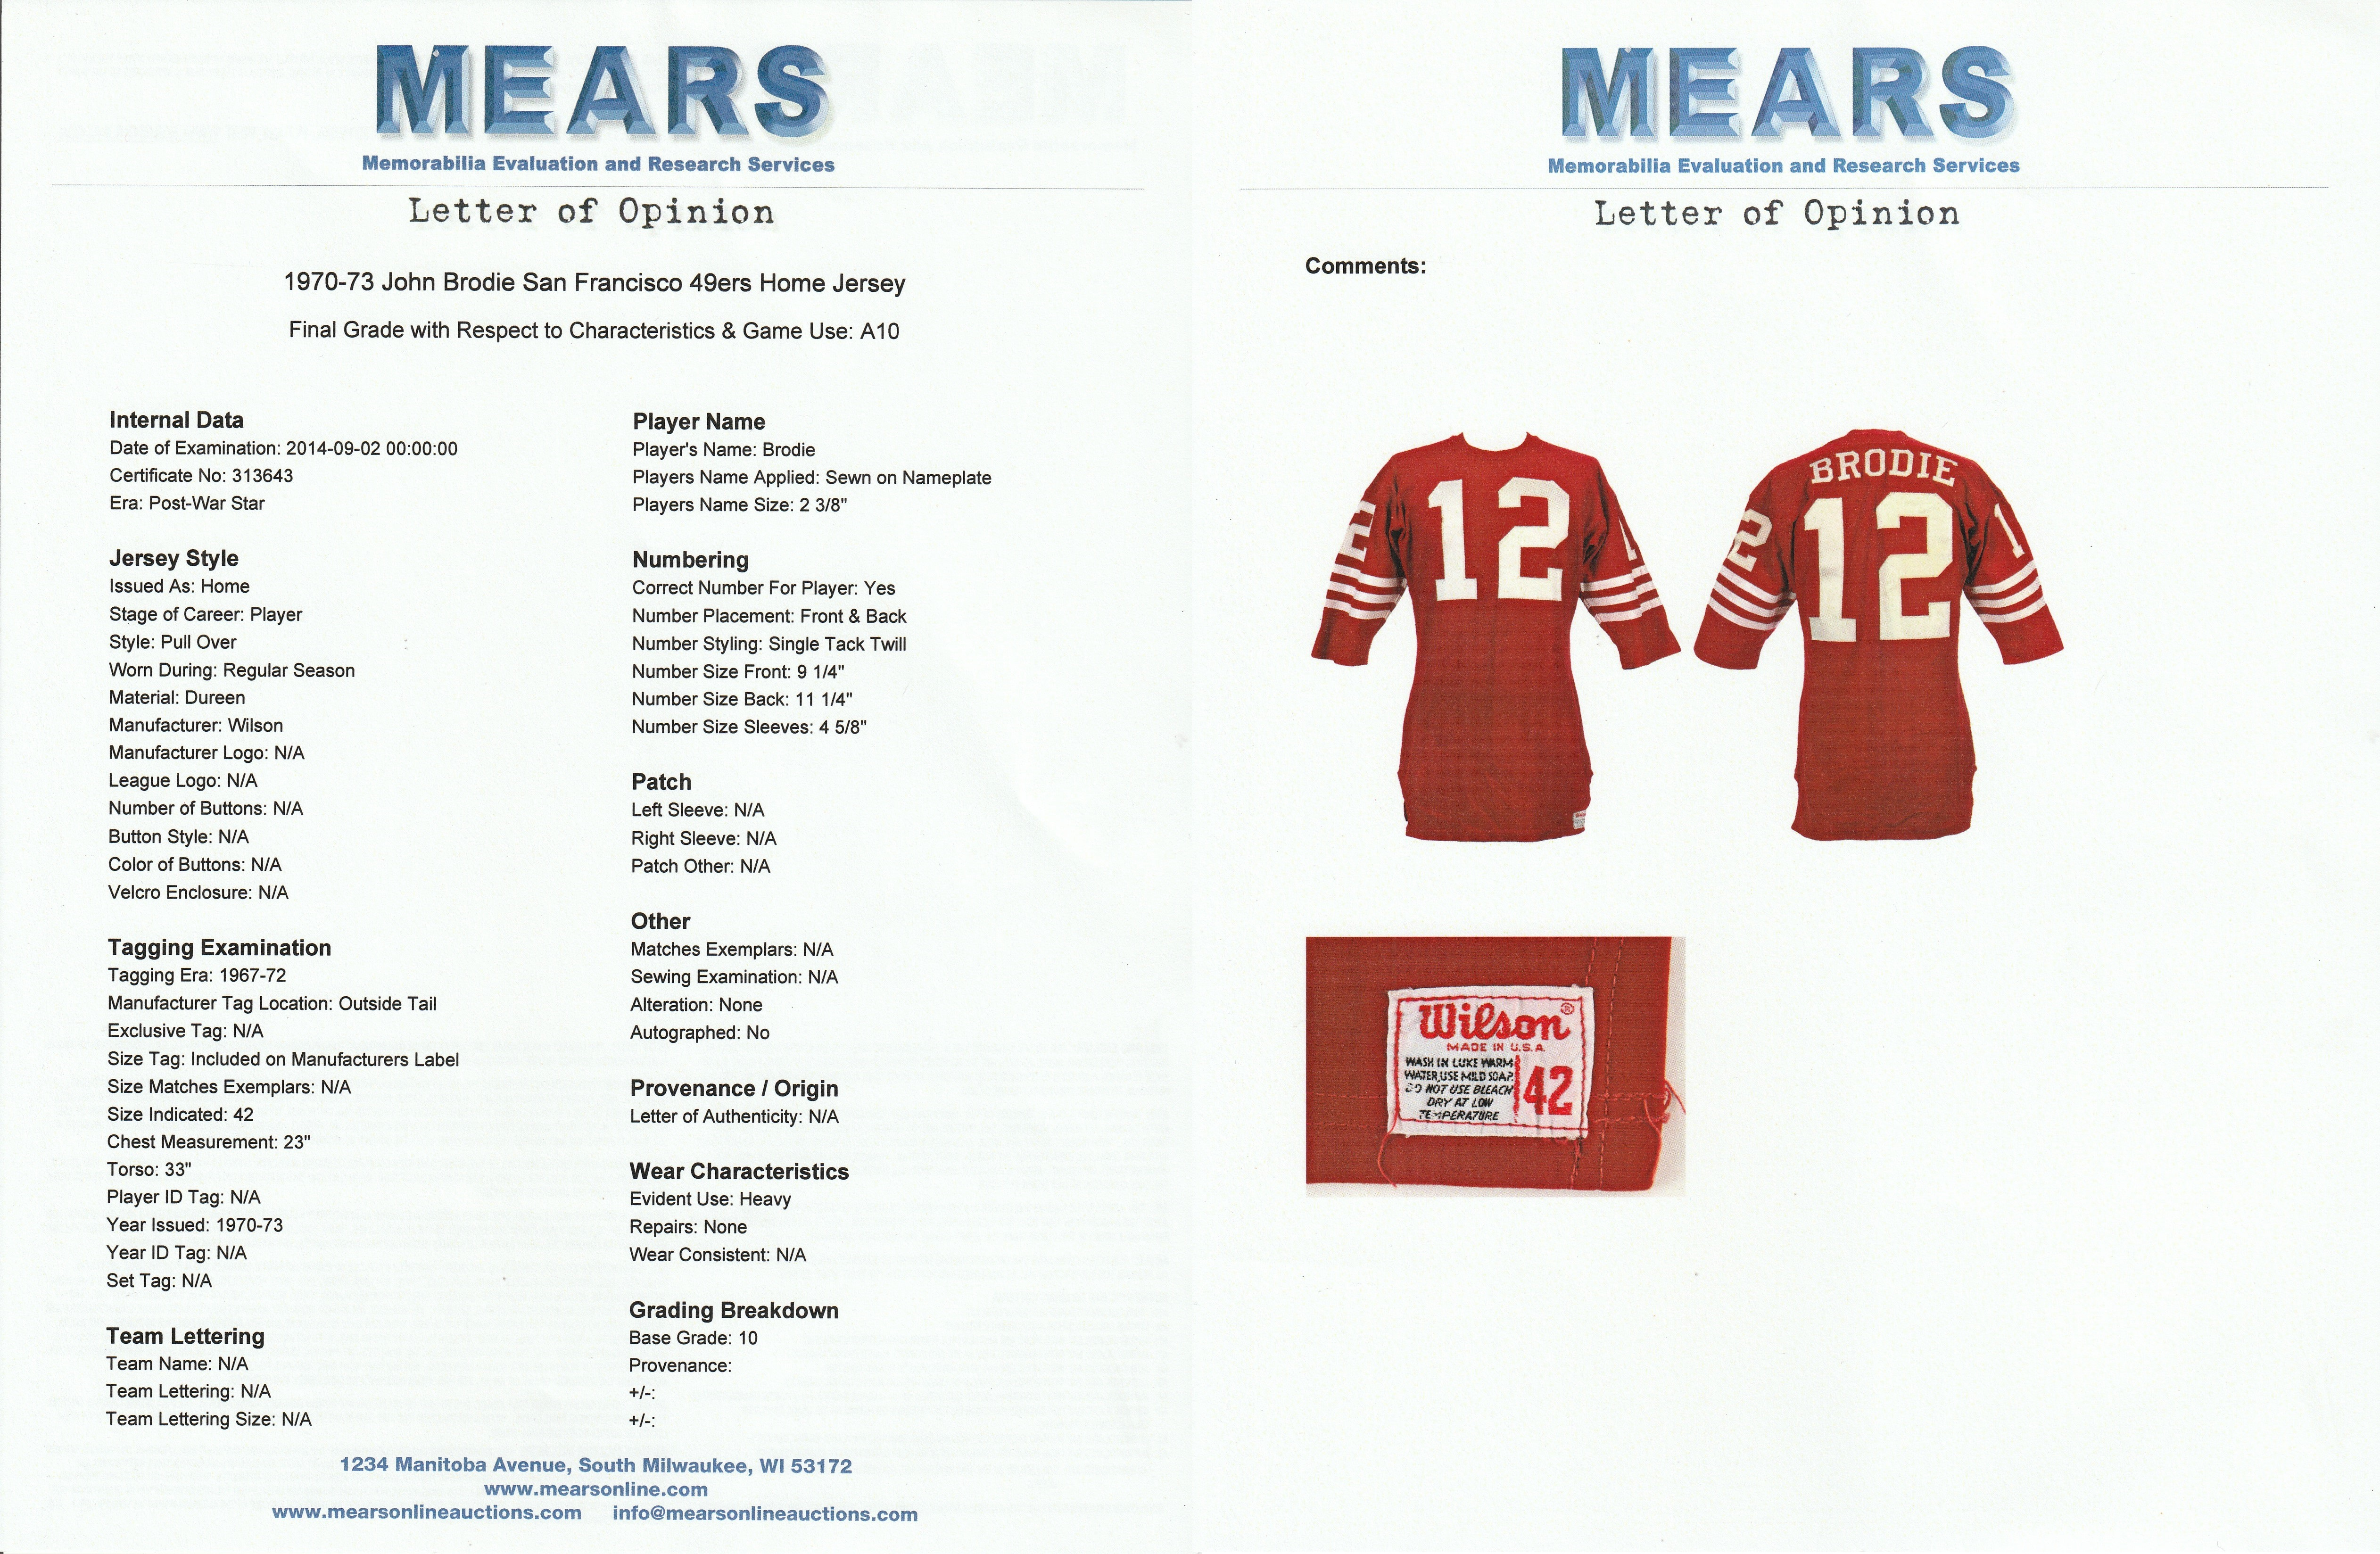 a6d5ebbc120 ... John Brodie San Francisco 49ers Home Jersey (MEARS A10). Prev Next